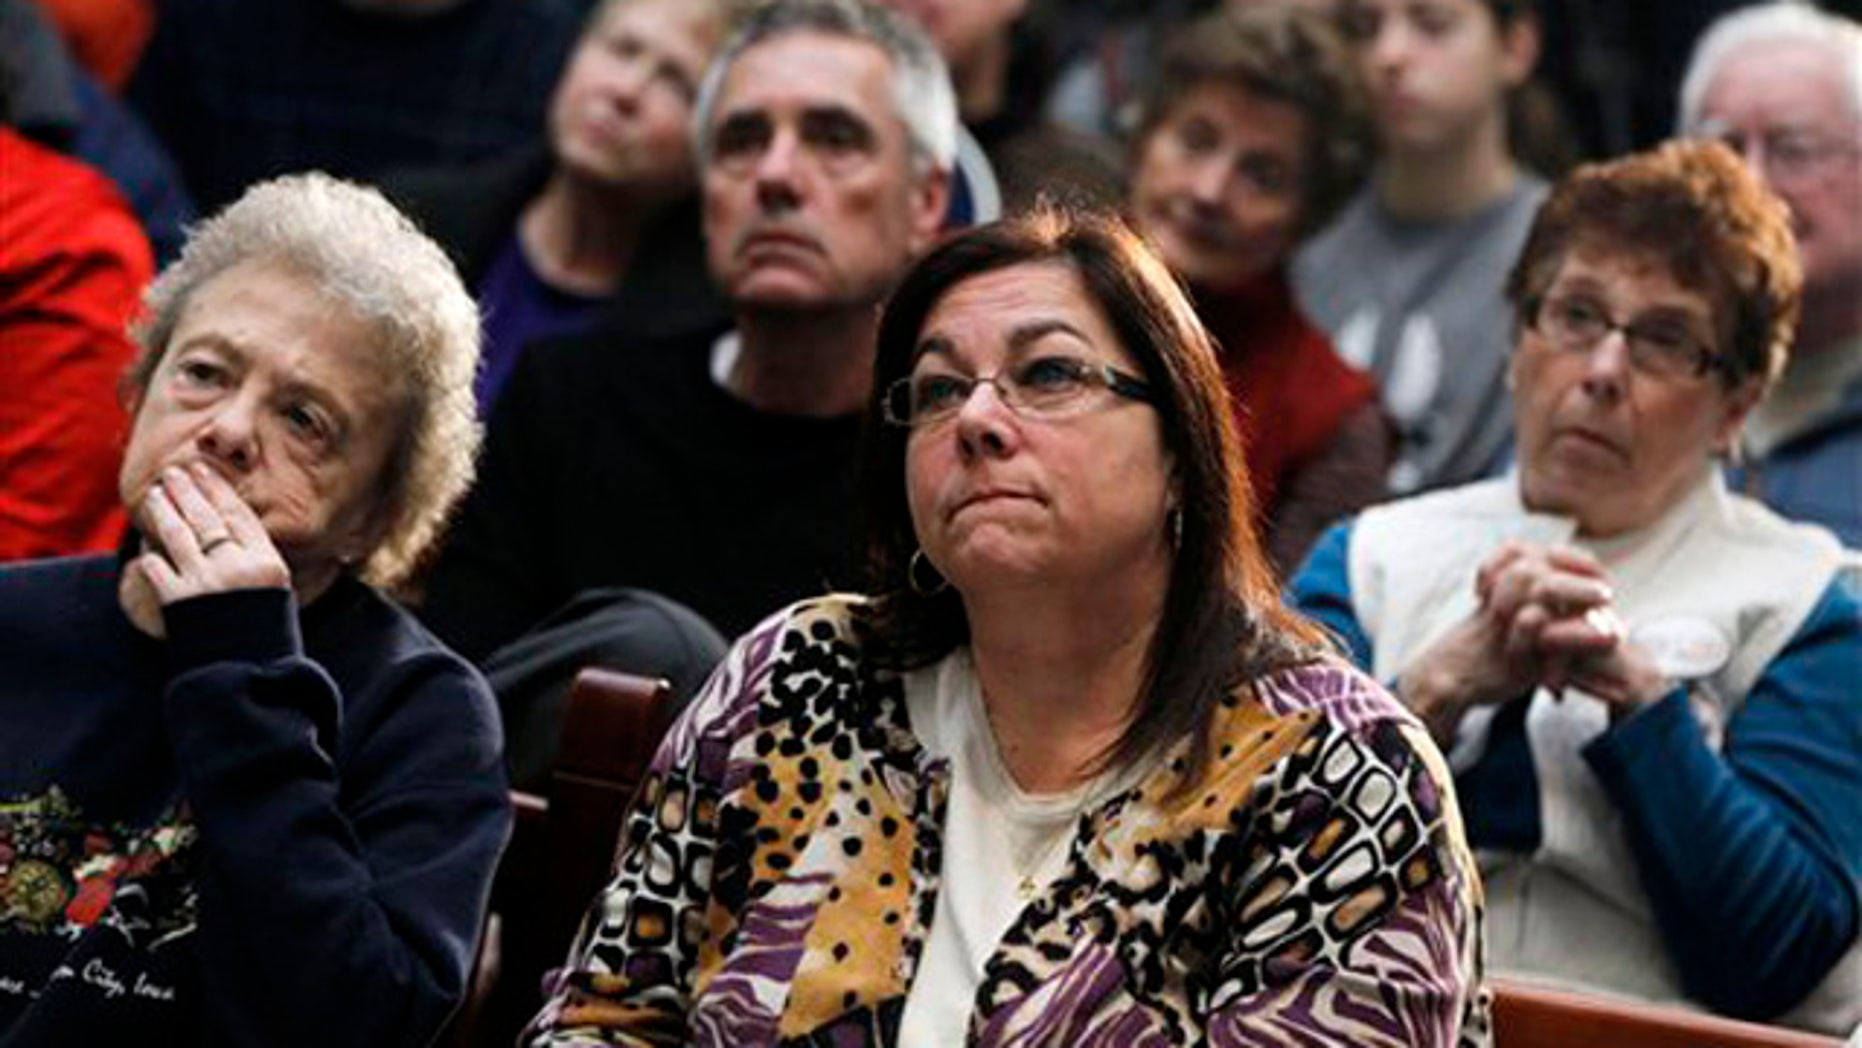 Dec. 28, 2011: Audience members listen as former House Speaker Newt Gingrich speaks during a campaign stop at the Southbridge Mall in Mason City, Iowa.